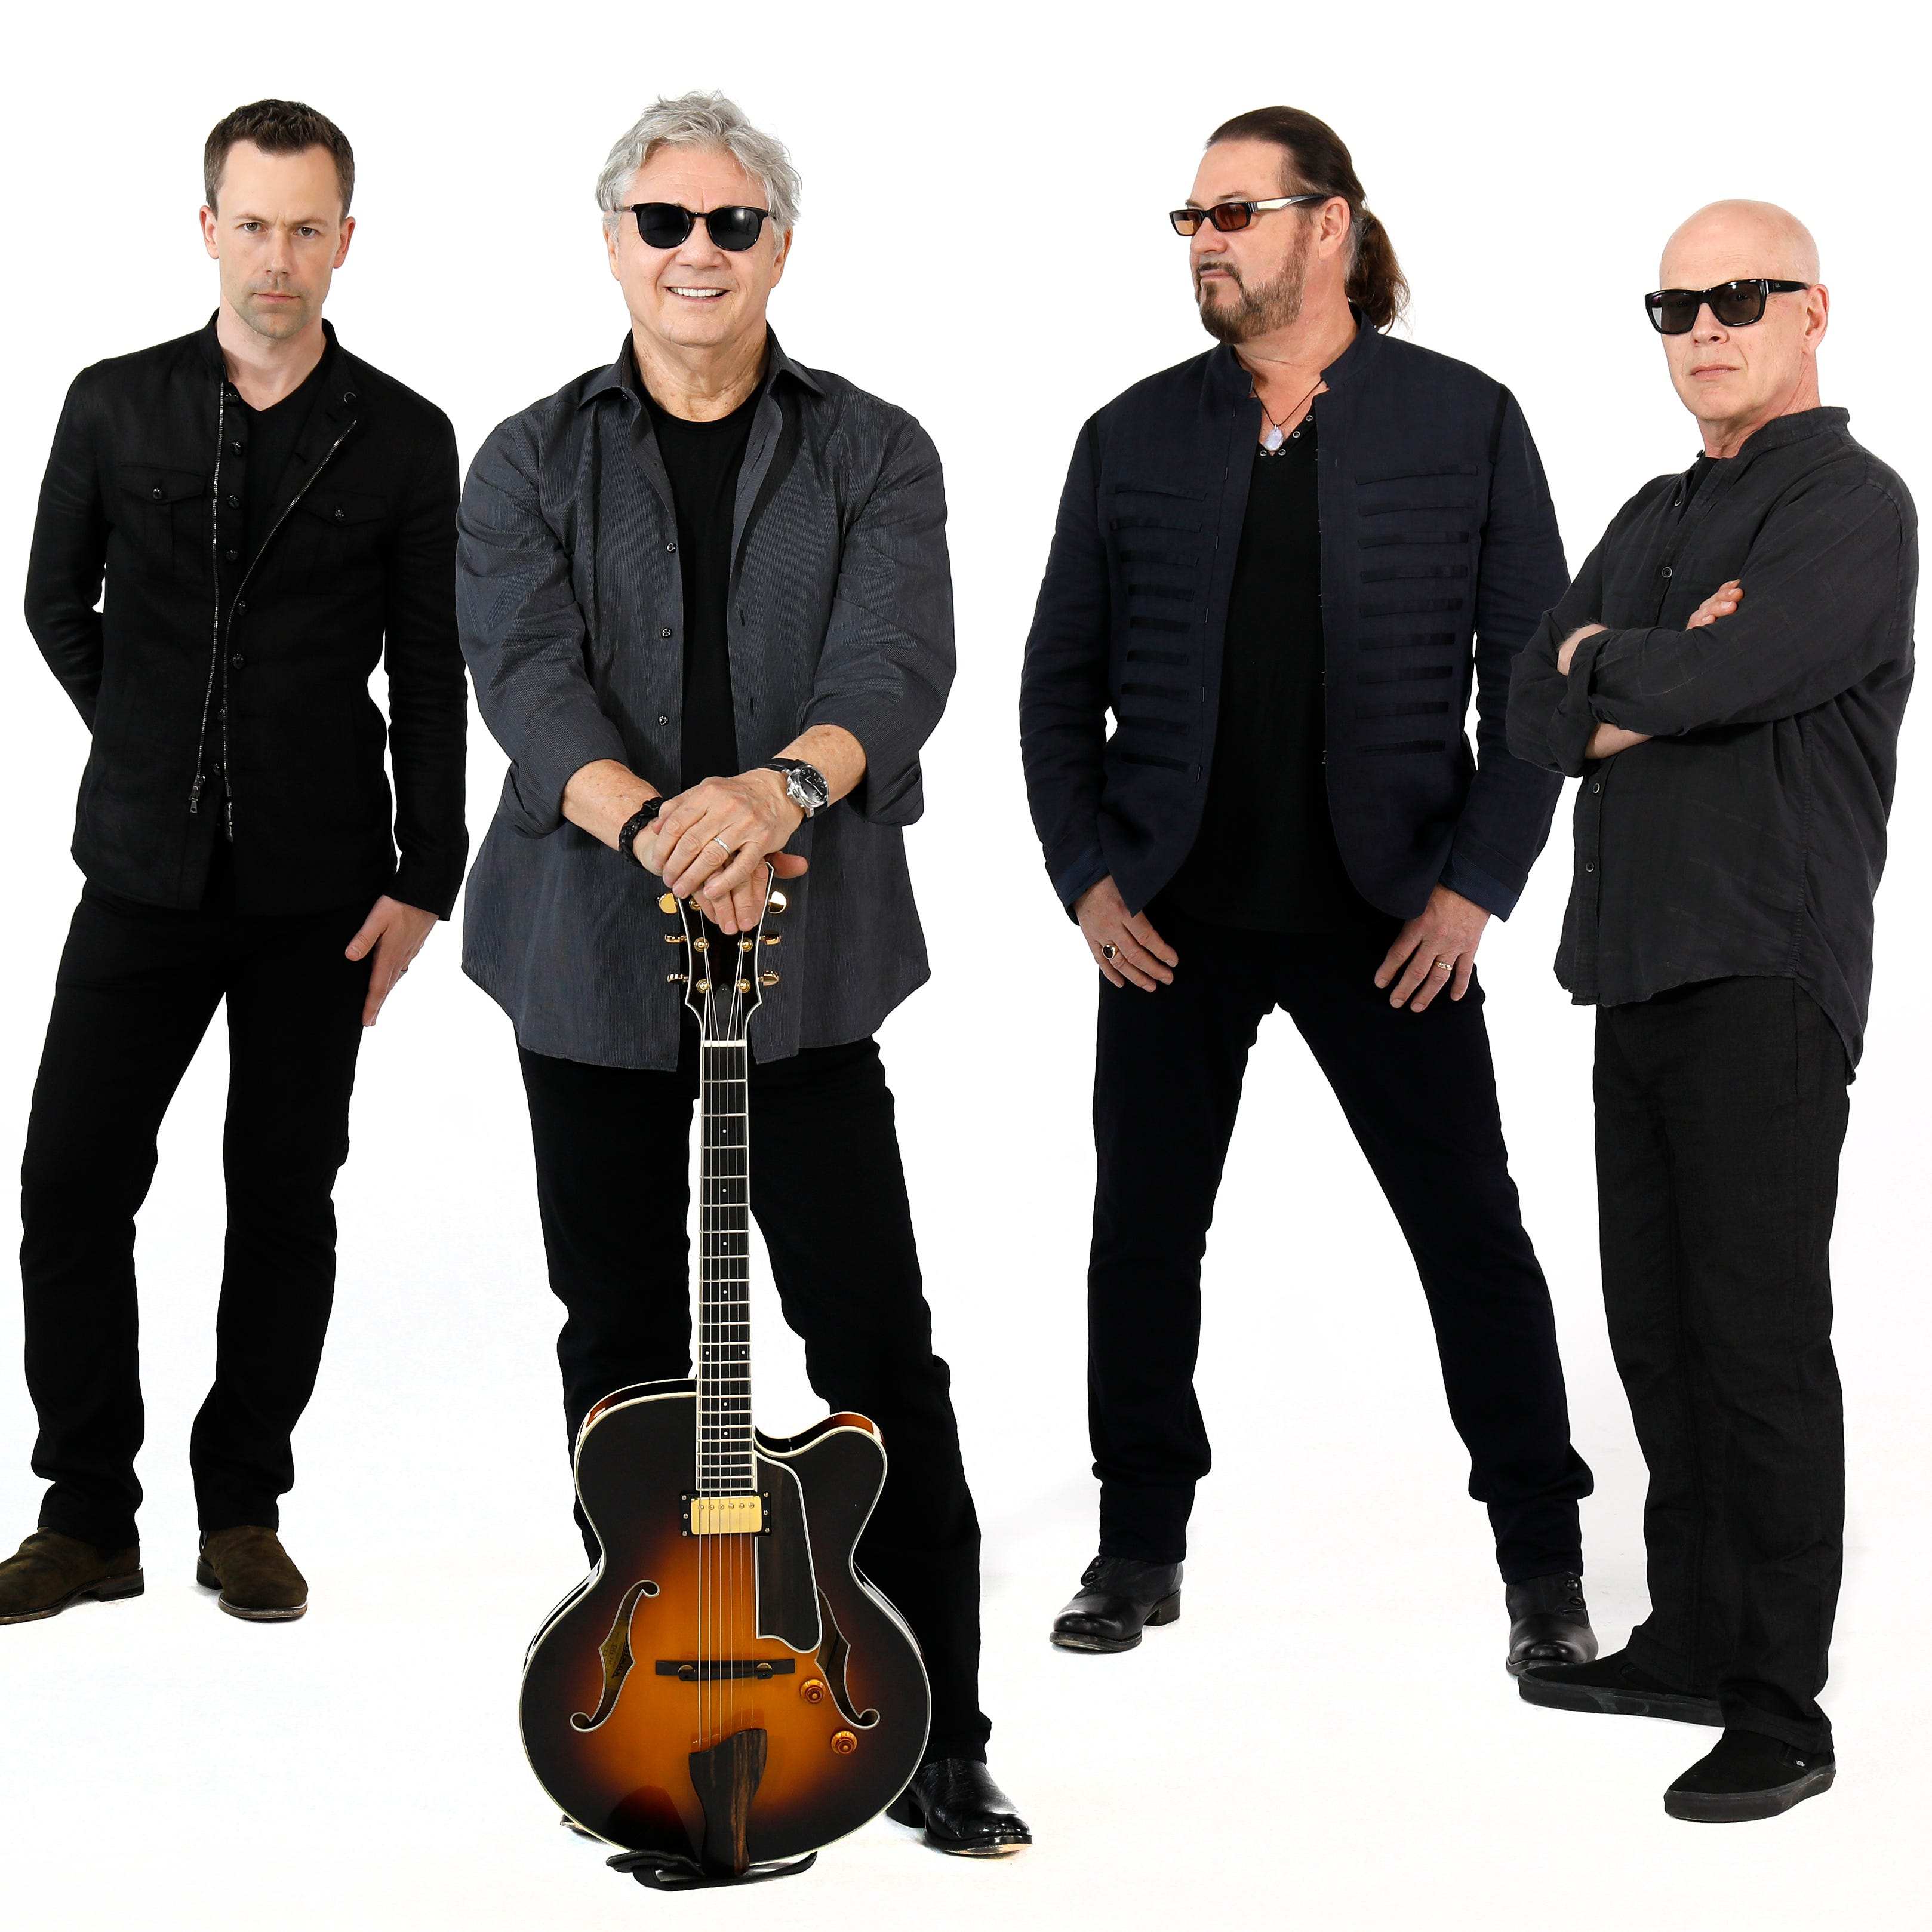 Things to do in Fort Myers, Cape Coral, Naples: Bonita Blues Fest, Steve Miller Band, etc.